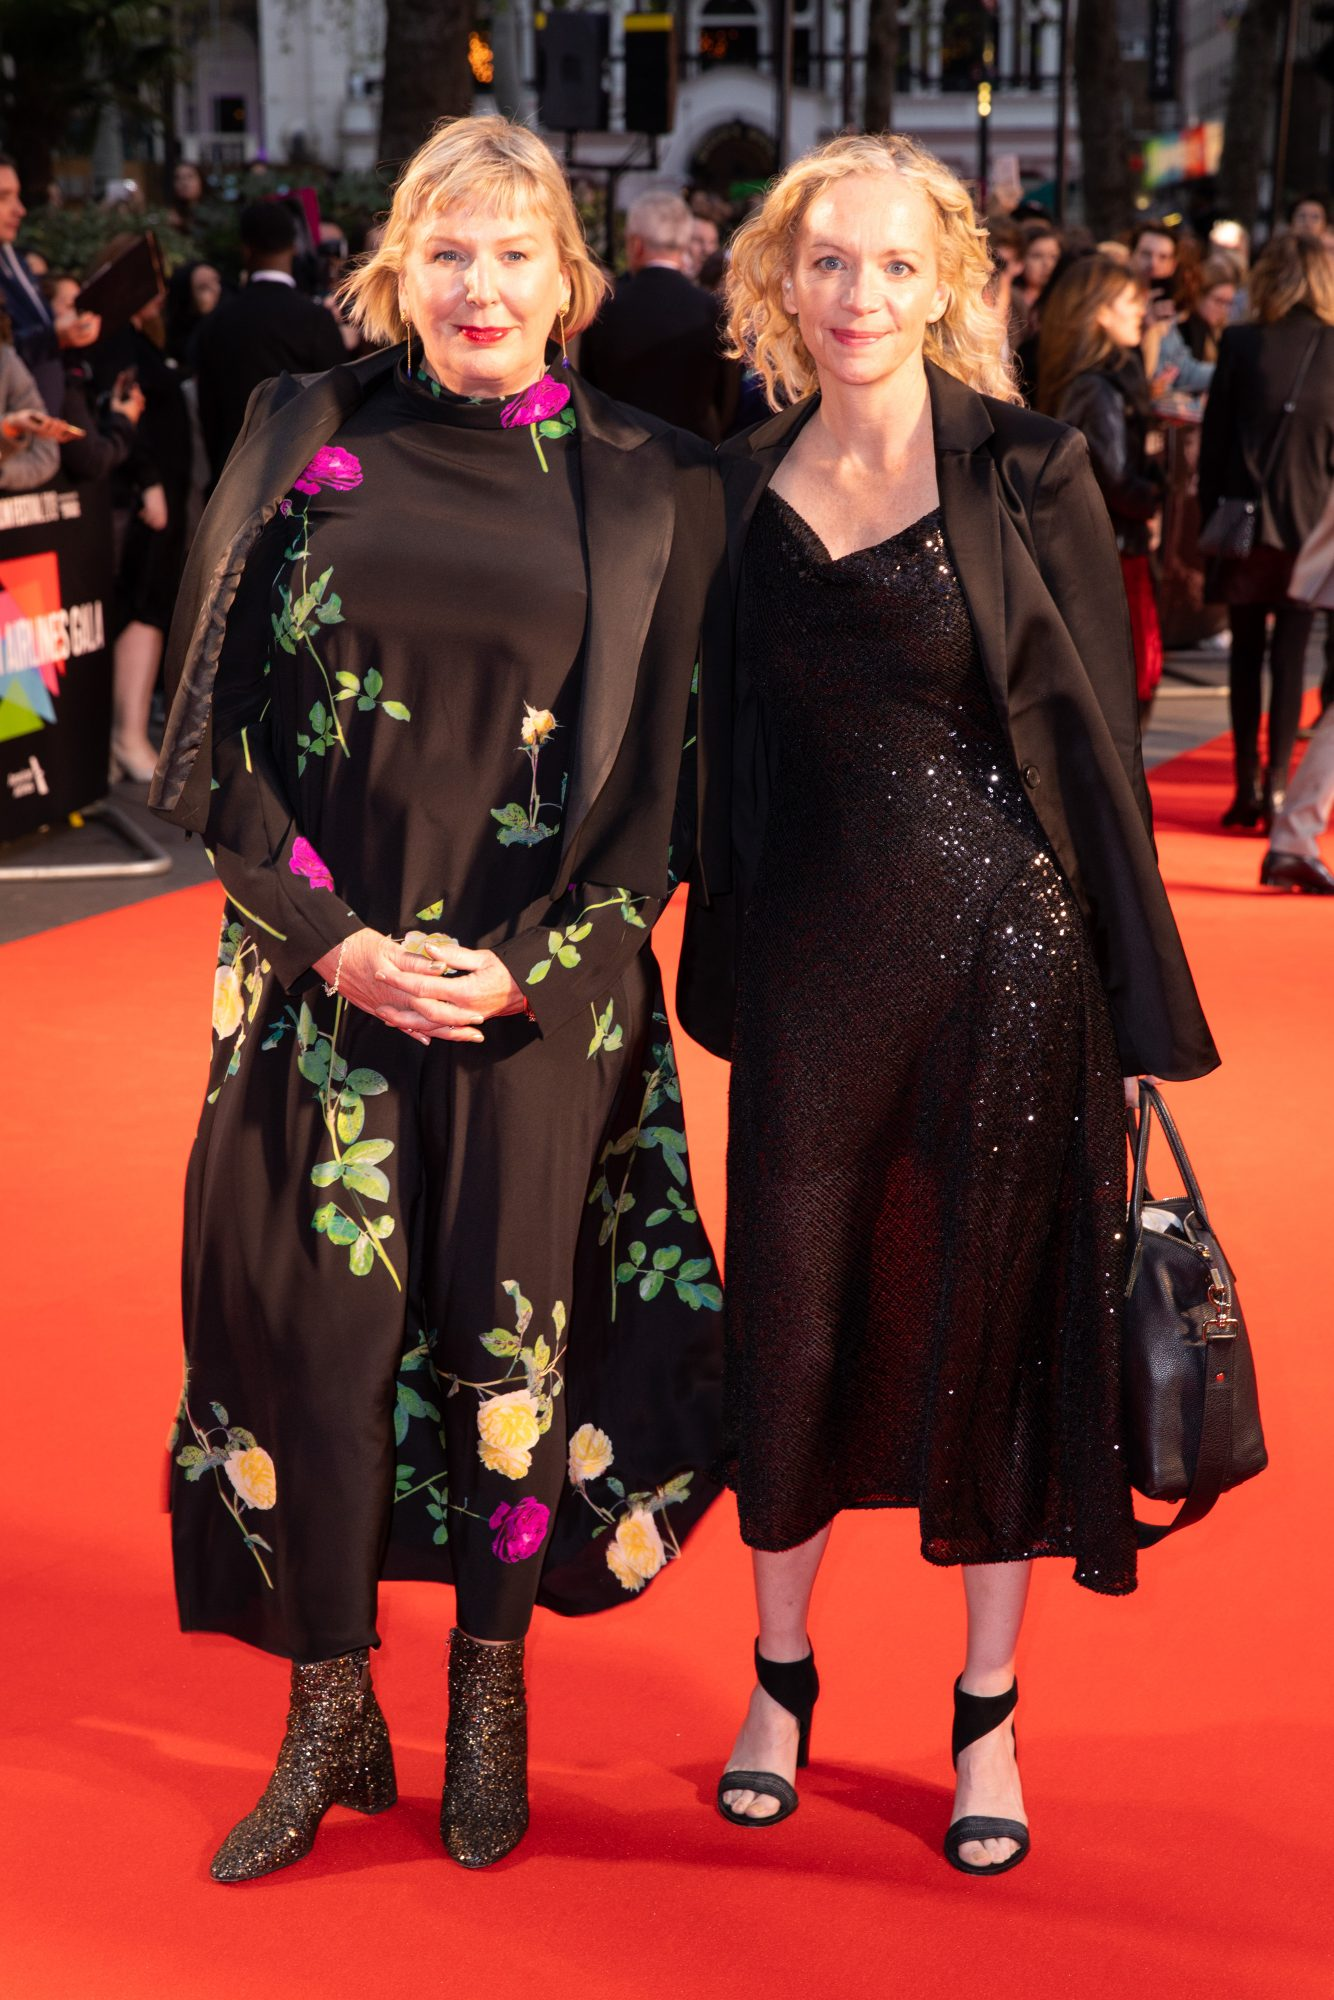 Liz Watts and Dede Gardner at The King UK Premiere during the 63rd BFI London Film Festival at Odeon Luxe Leicester Square on 3rd October 2019.  Photos: Netflix